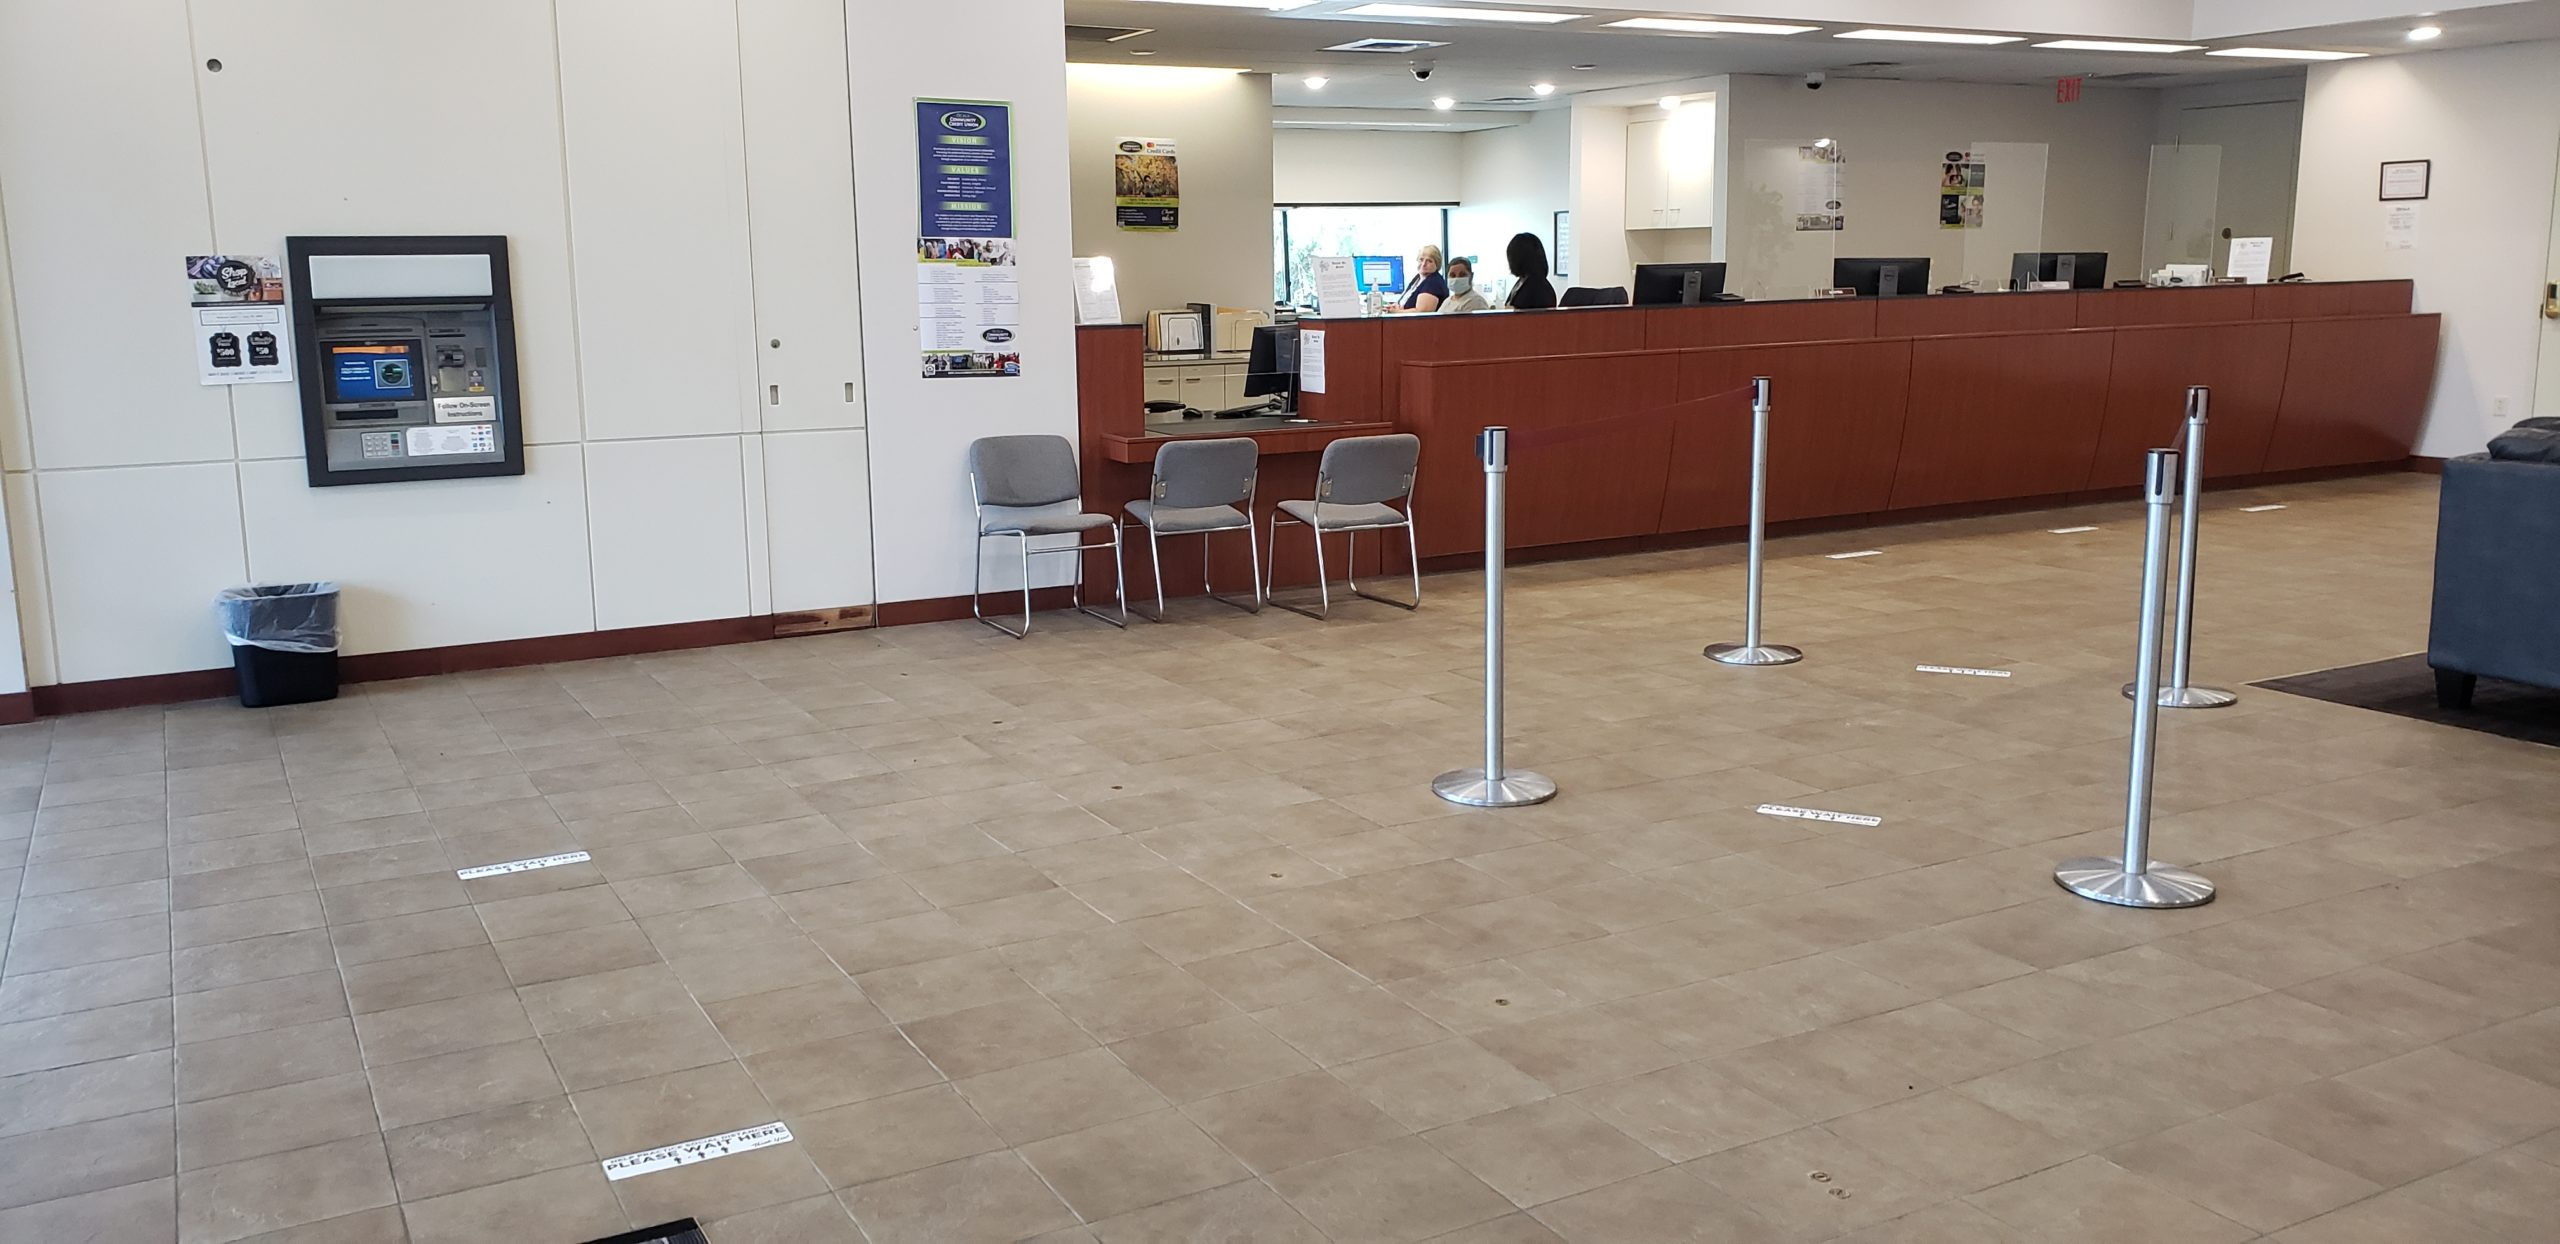 06-01-2020 New Sneeze Guards - Marion Oaks Branch Lobby